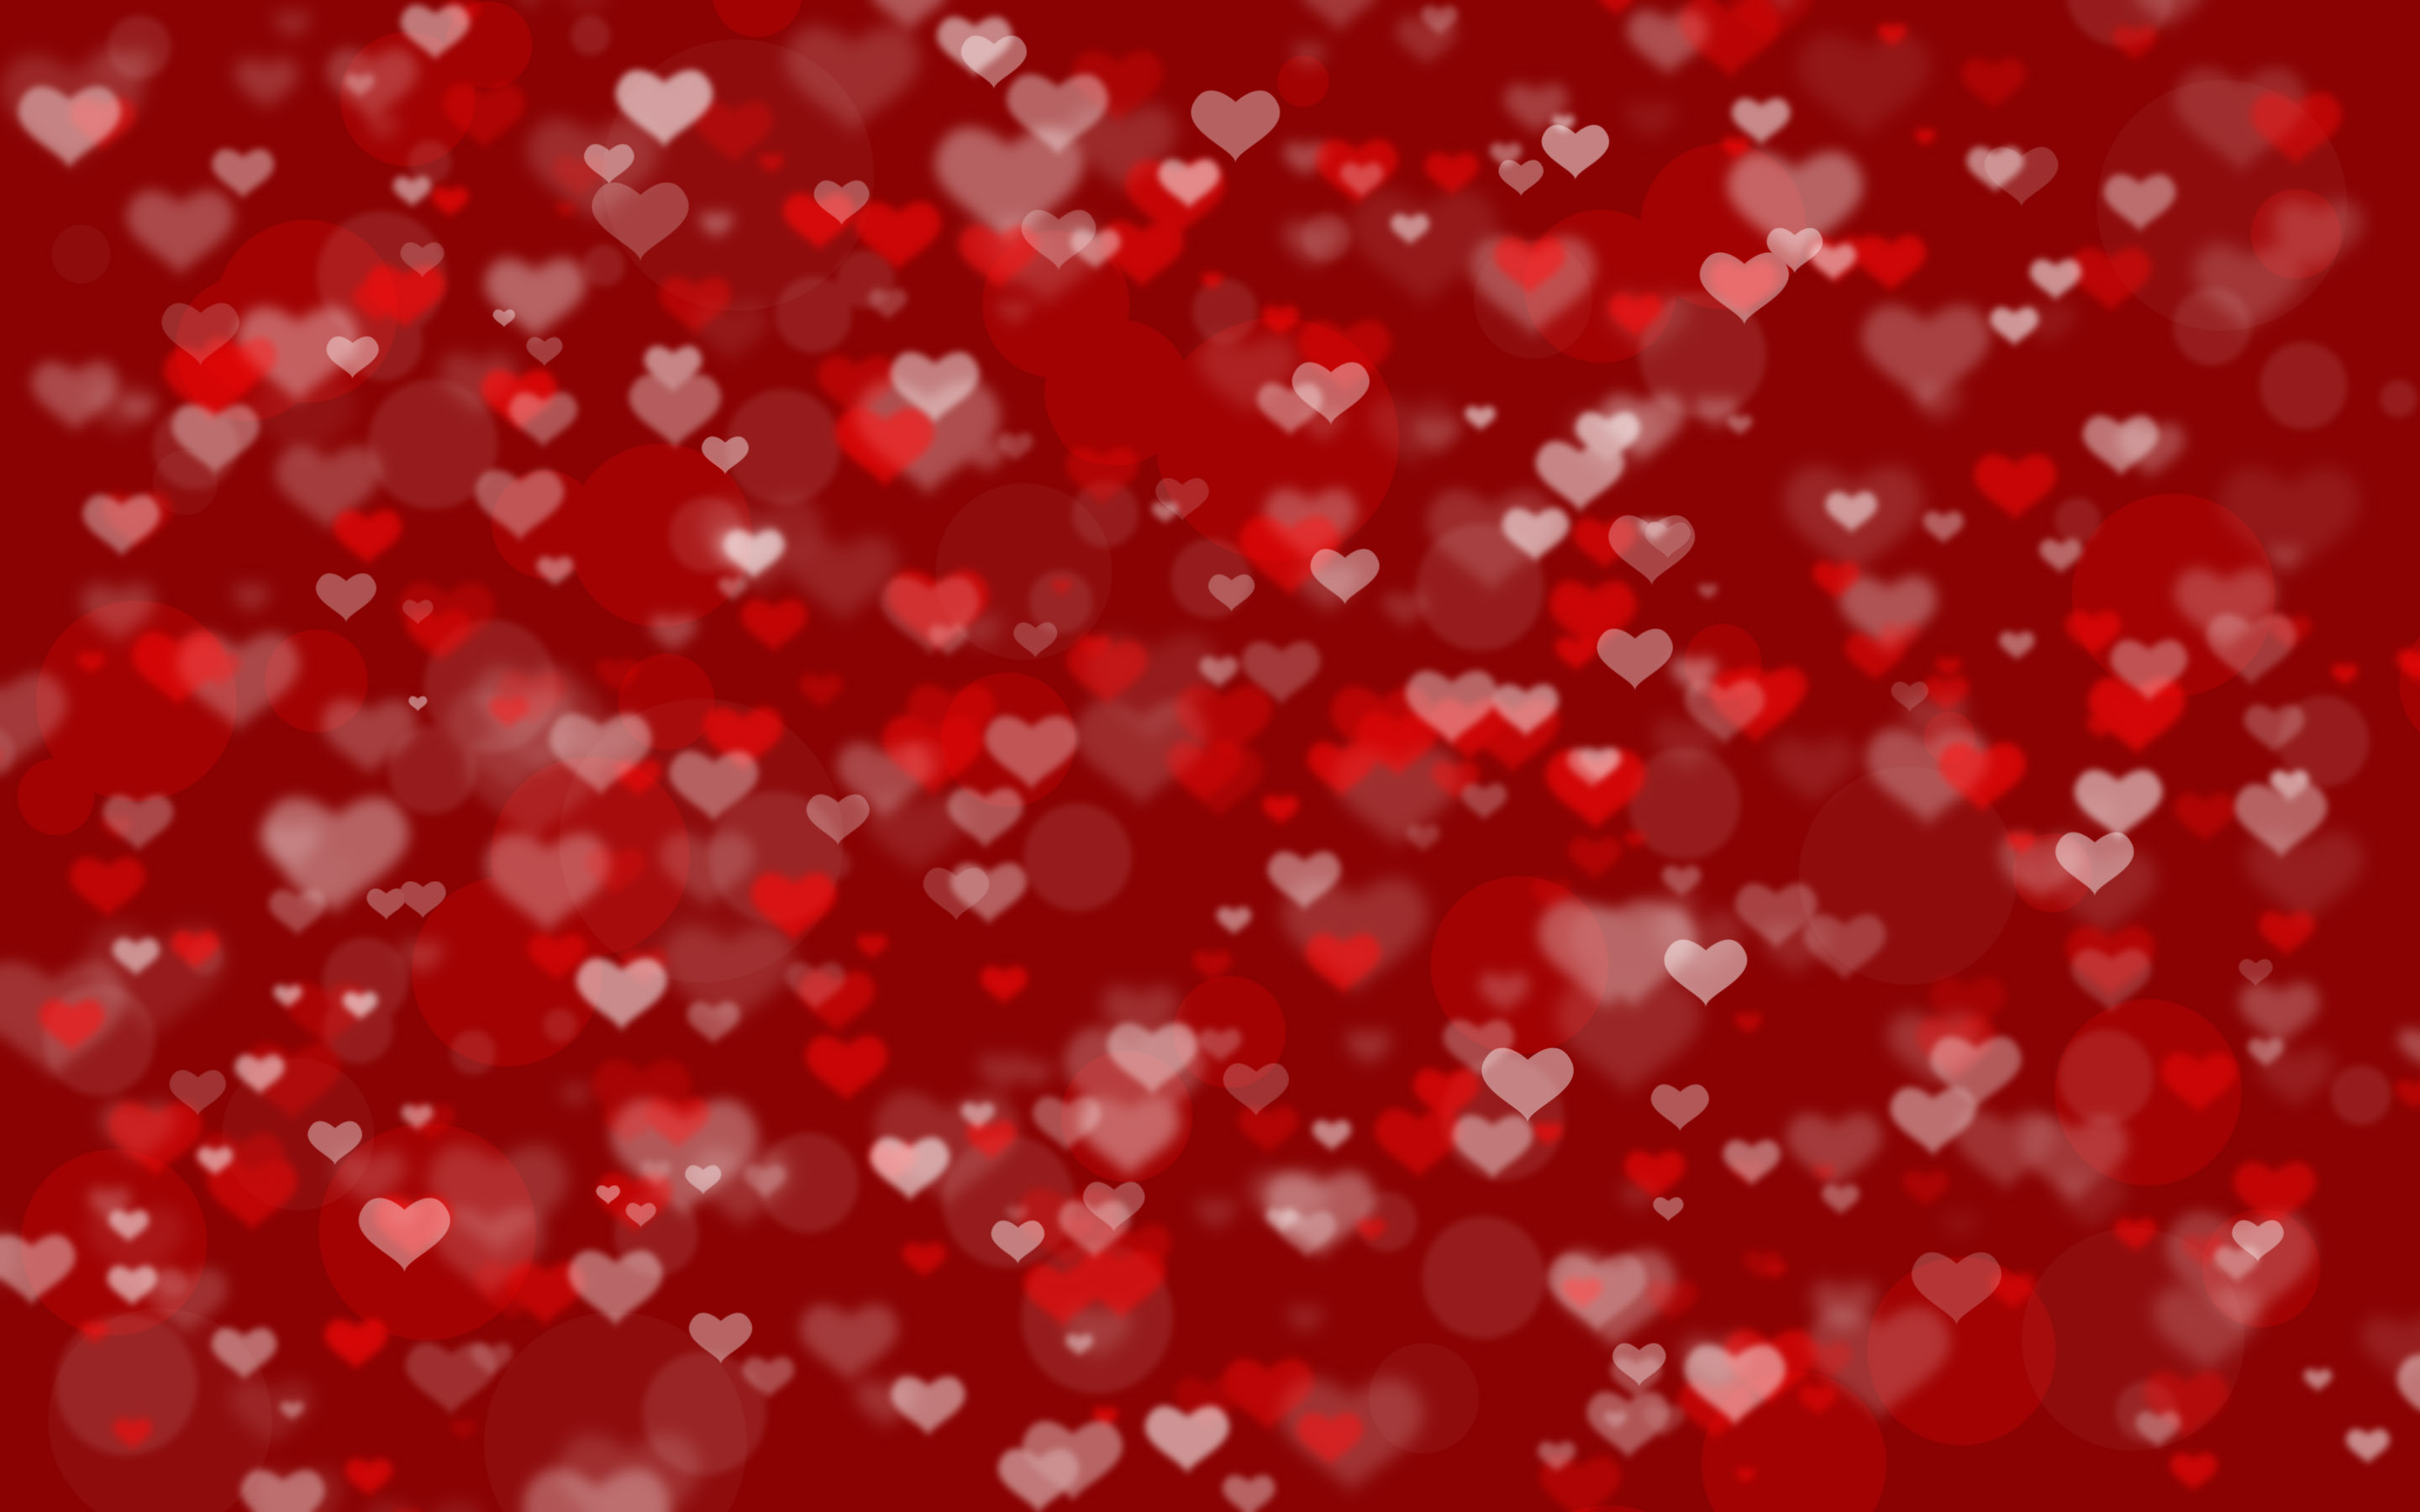 Red Three Heart Love Wallpaper Background Wallpaper   Hearts   Pinterest    Wallpaper and Wallpaper backgrounds